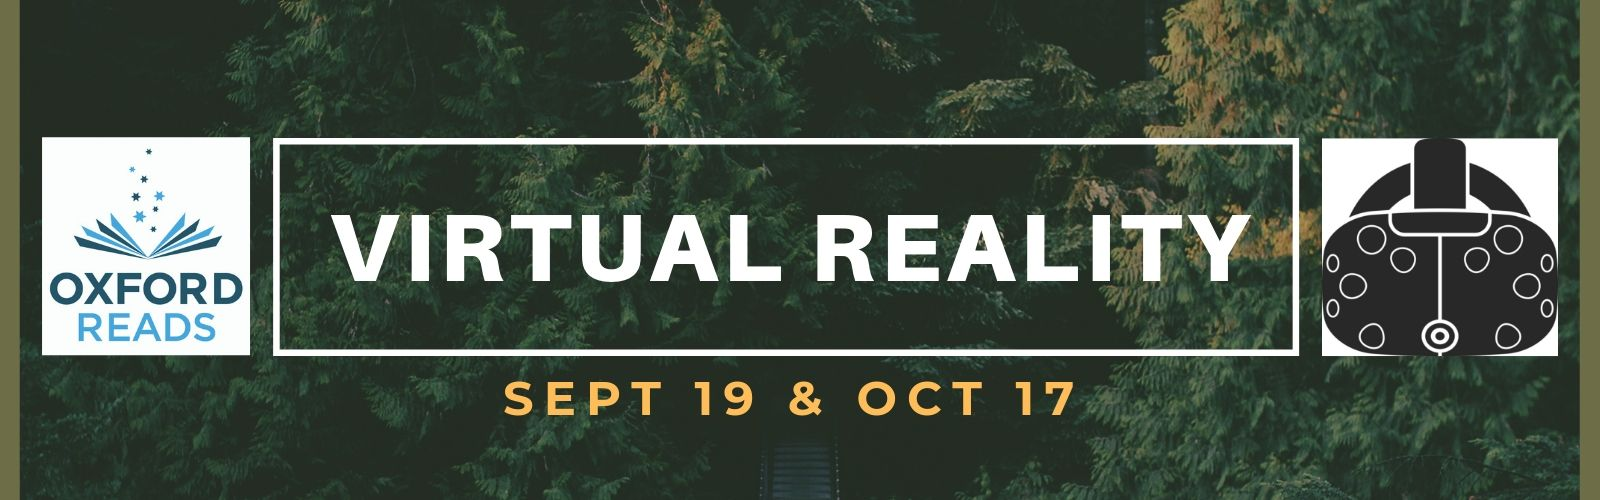 Virtual Reality September 19 and October 17